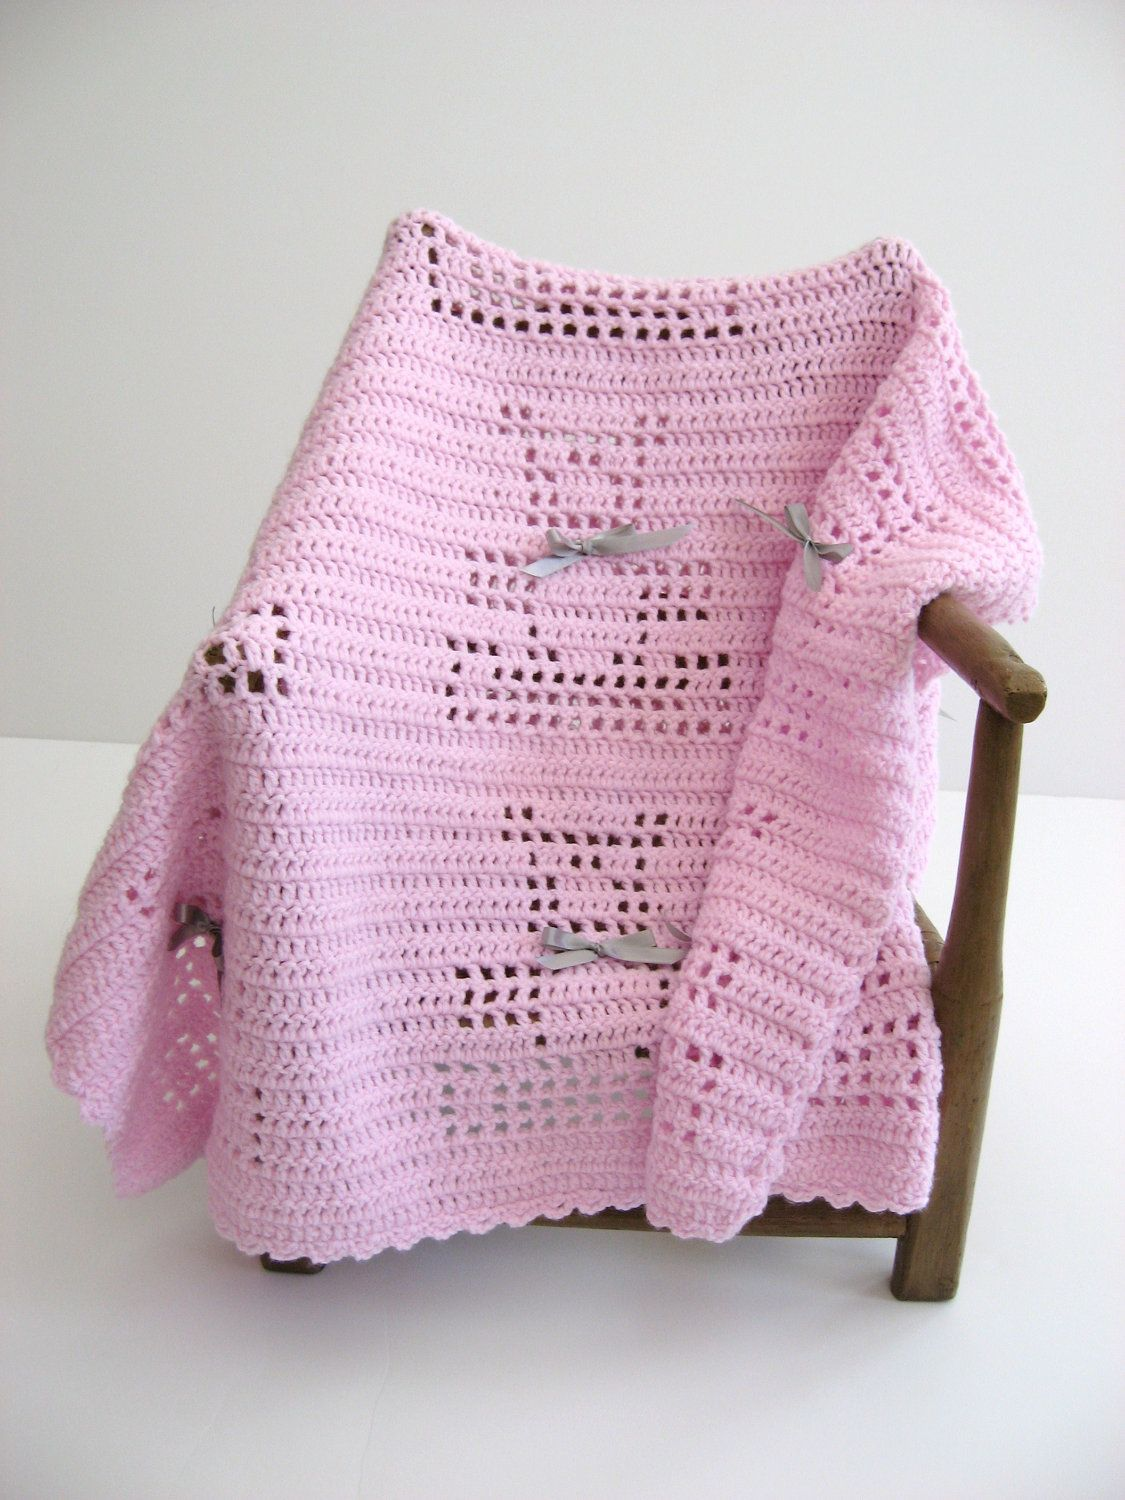 My favorite afghan pattern! I have crocheted this so many times in different colors and really like it!